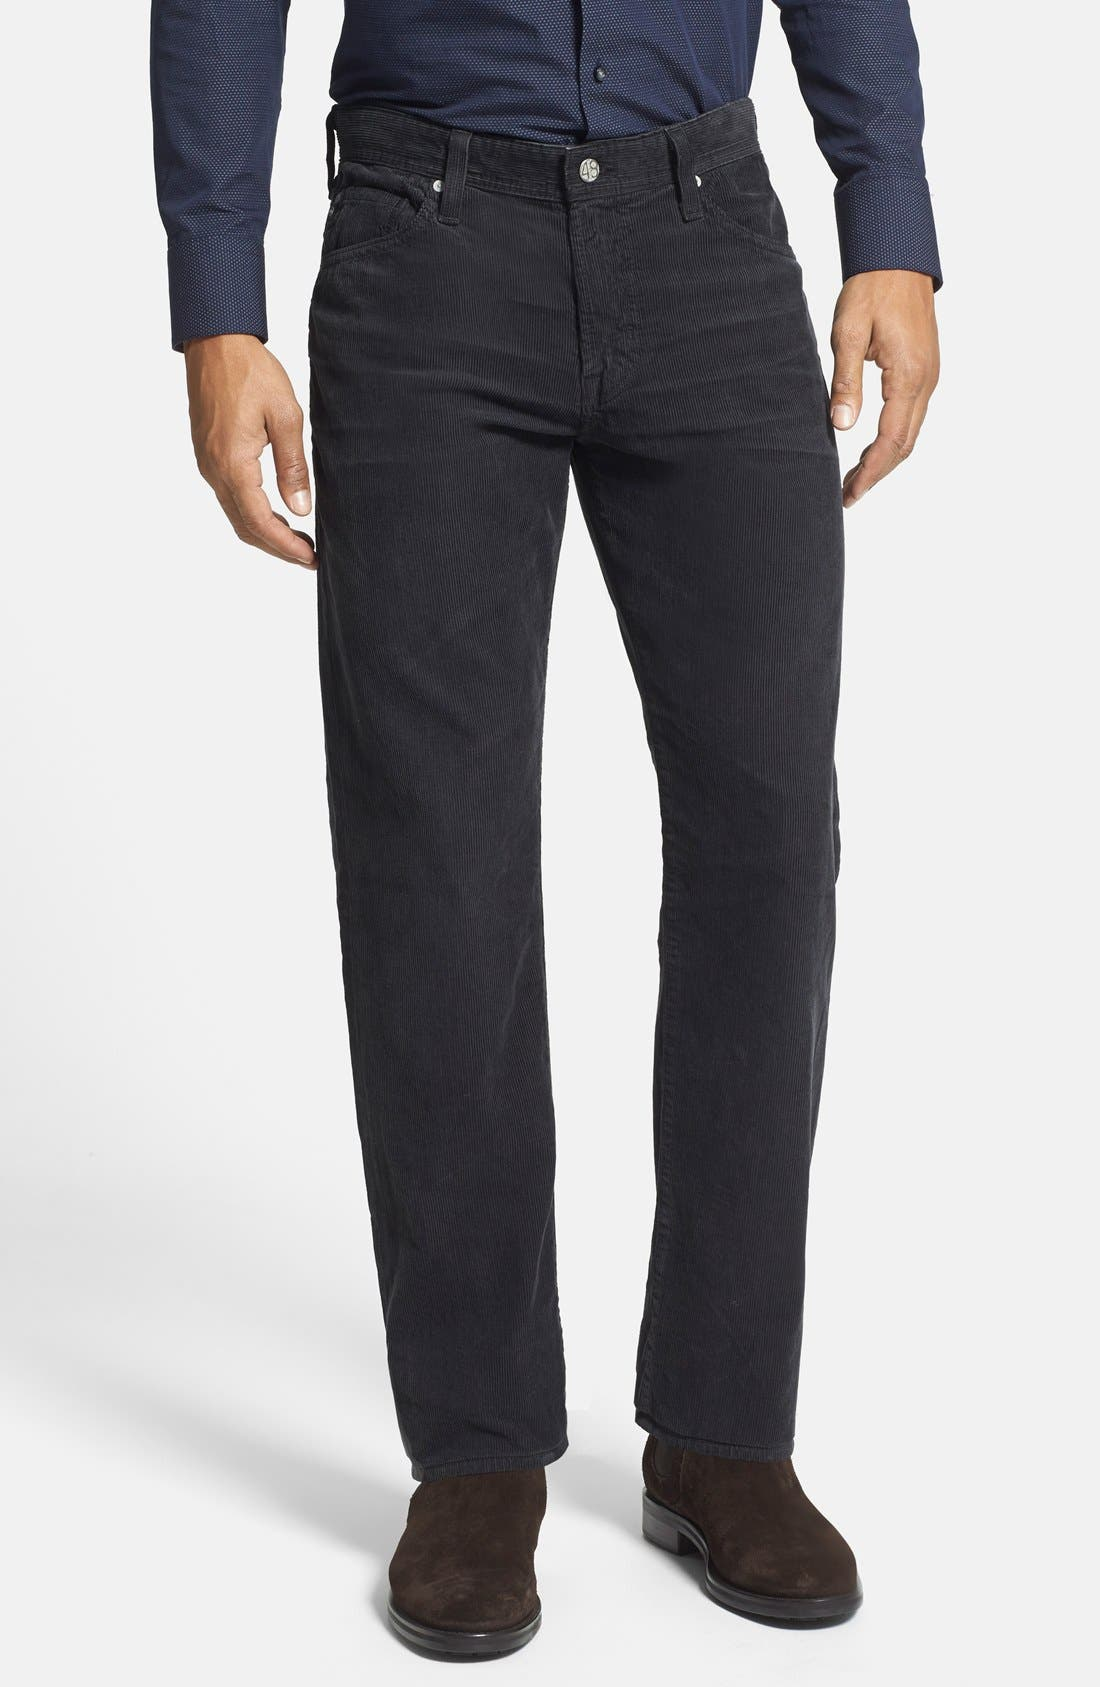 'Graduate' Tailored Straight Leg Corduroy Pants,                             Main thumbnail 5, color,